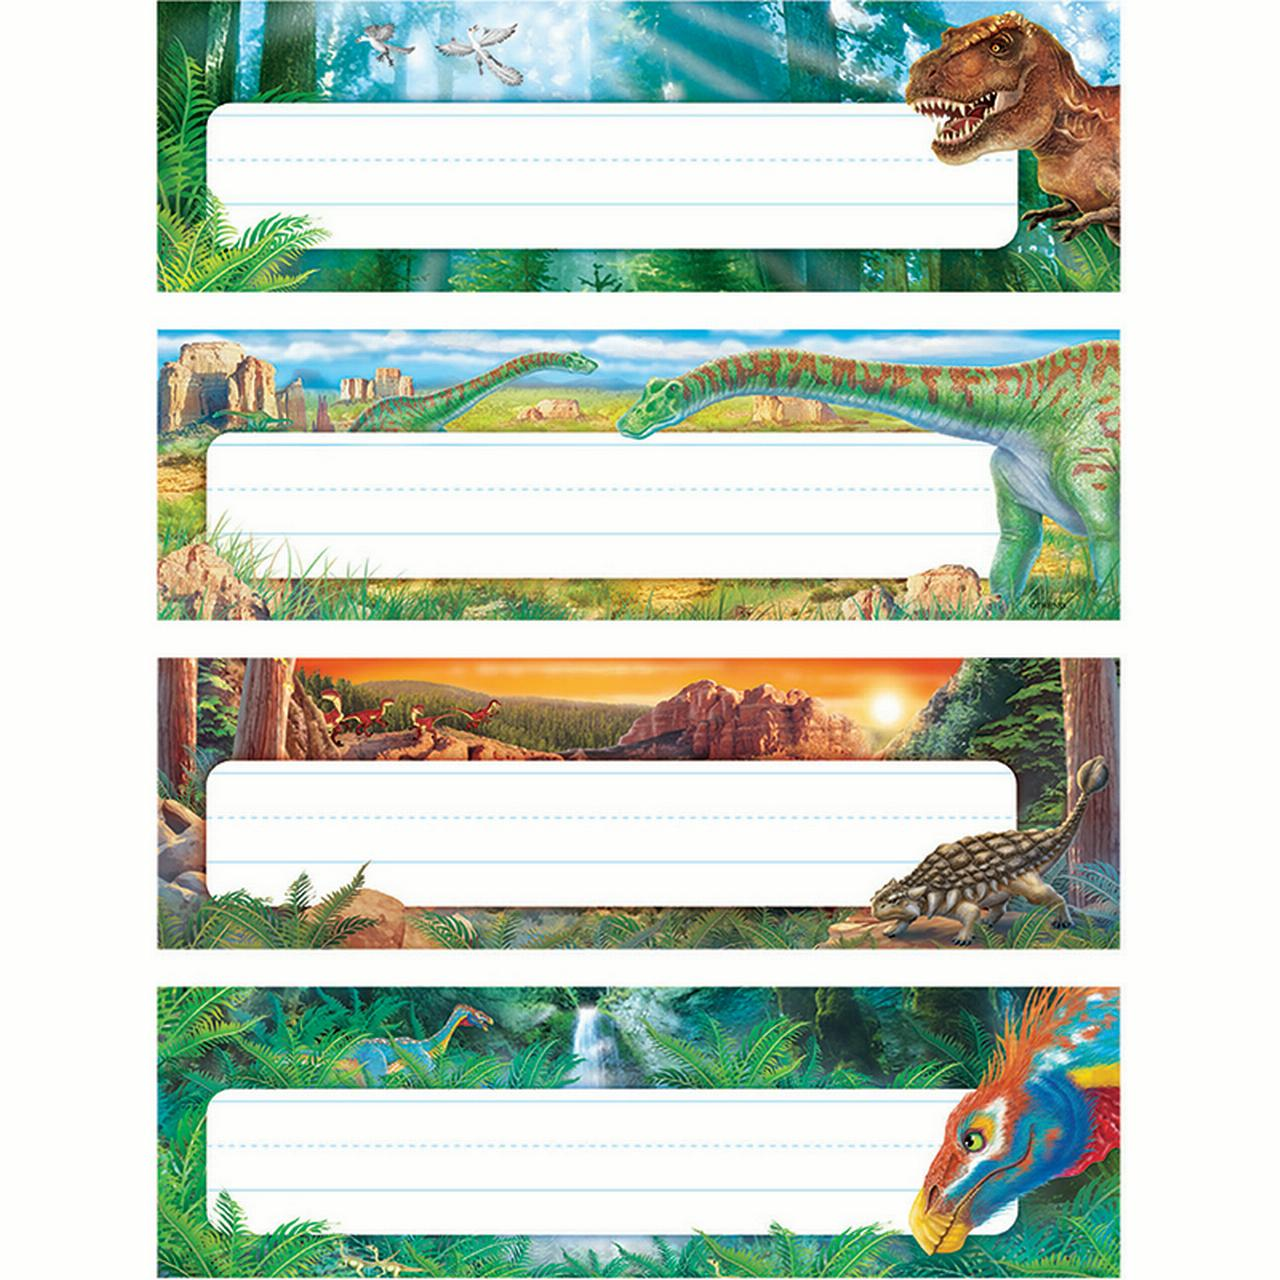 DISCOVERING DINOSAURS DESK TOPPERS NAME PLATES VARIETY PACK